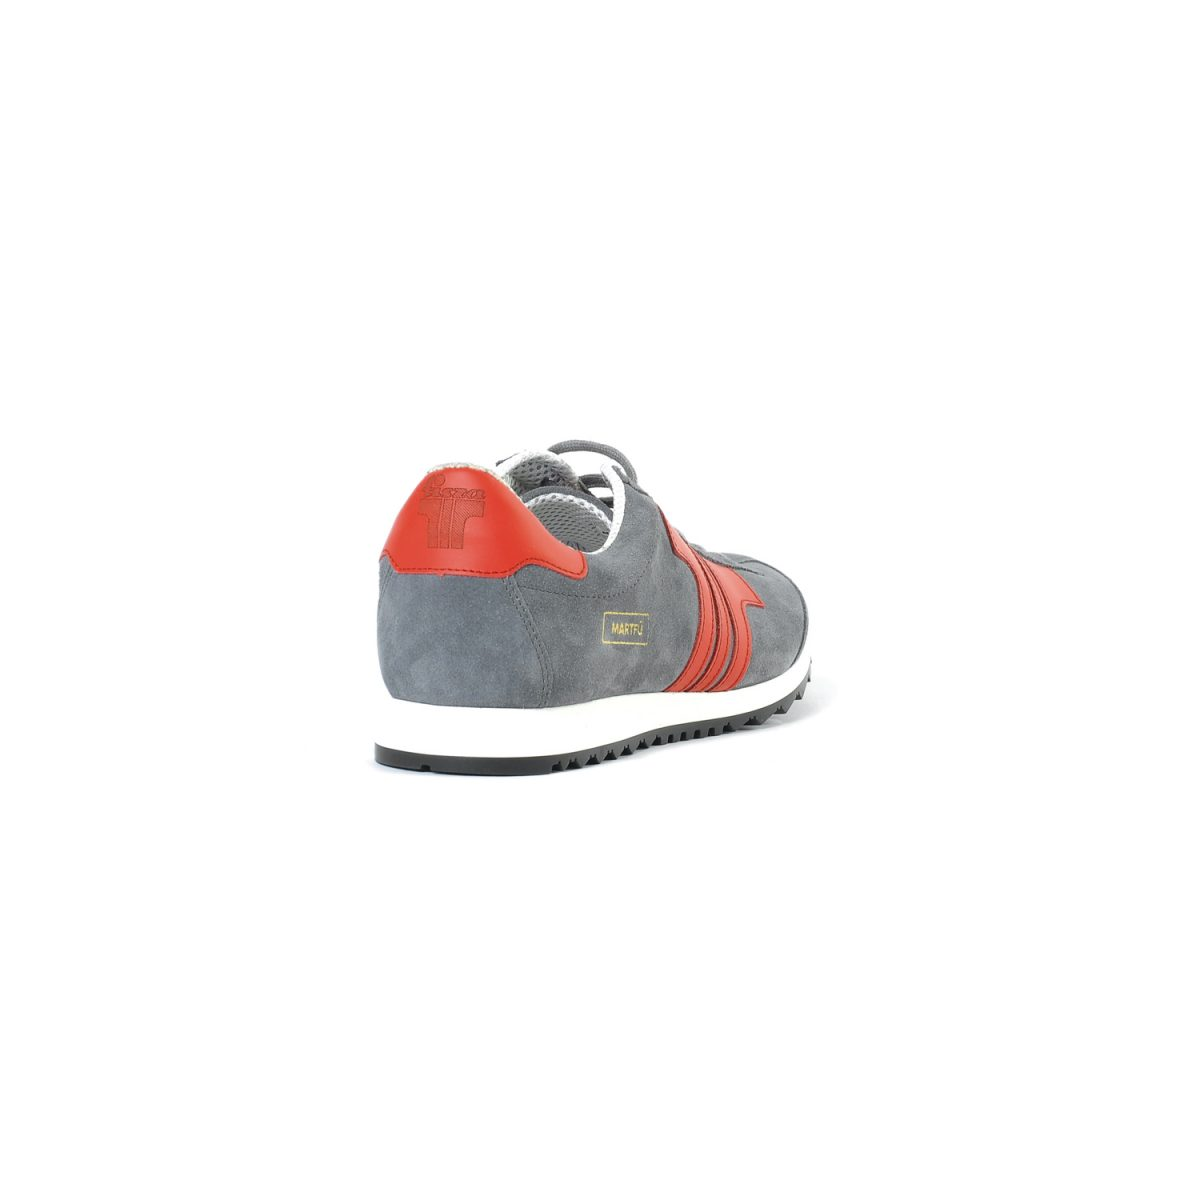 Tisza shoes - Martfű - Grey-red